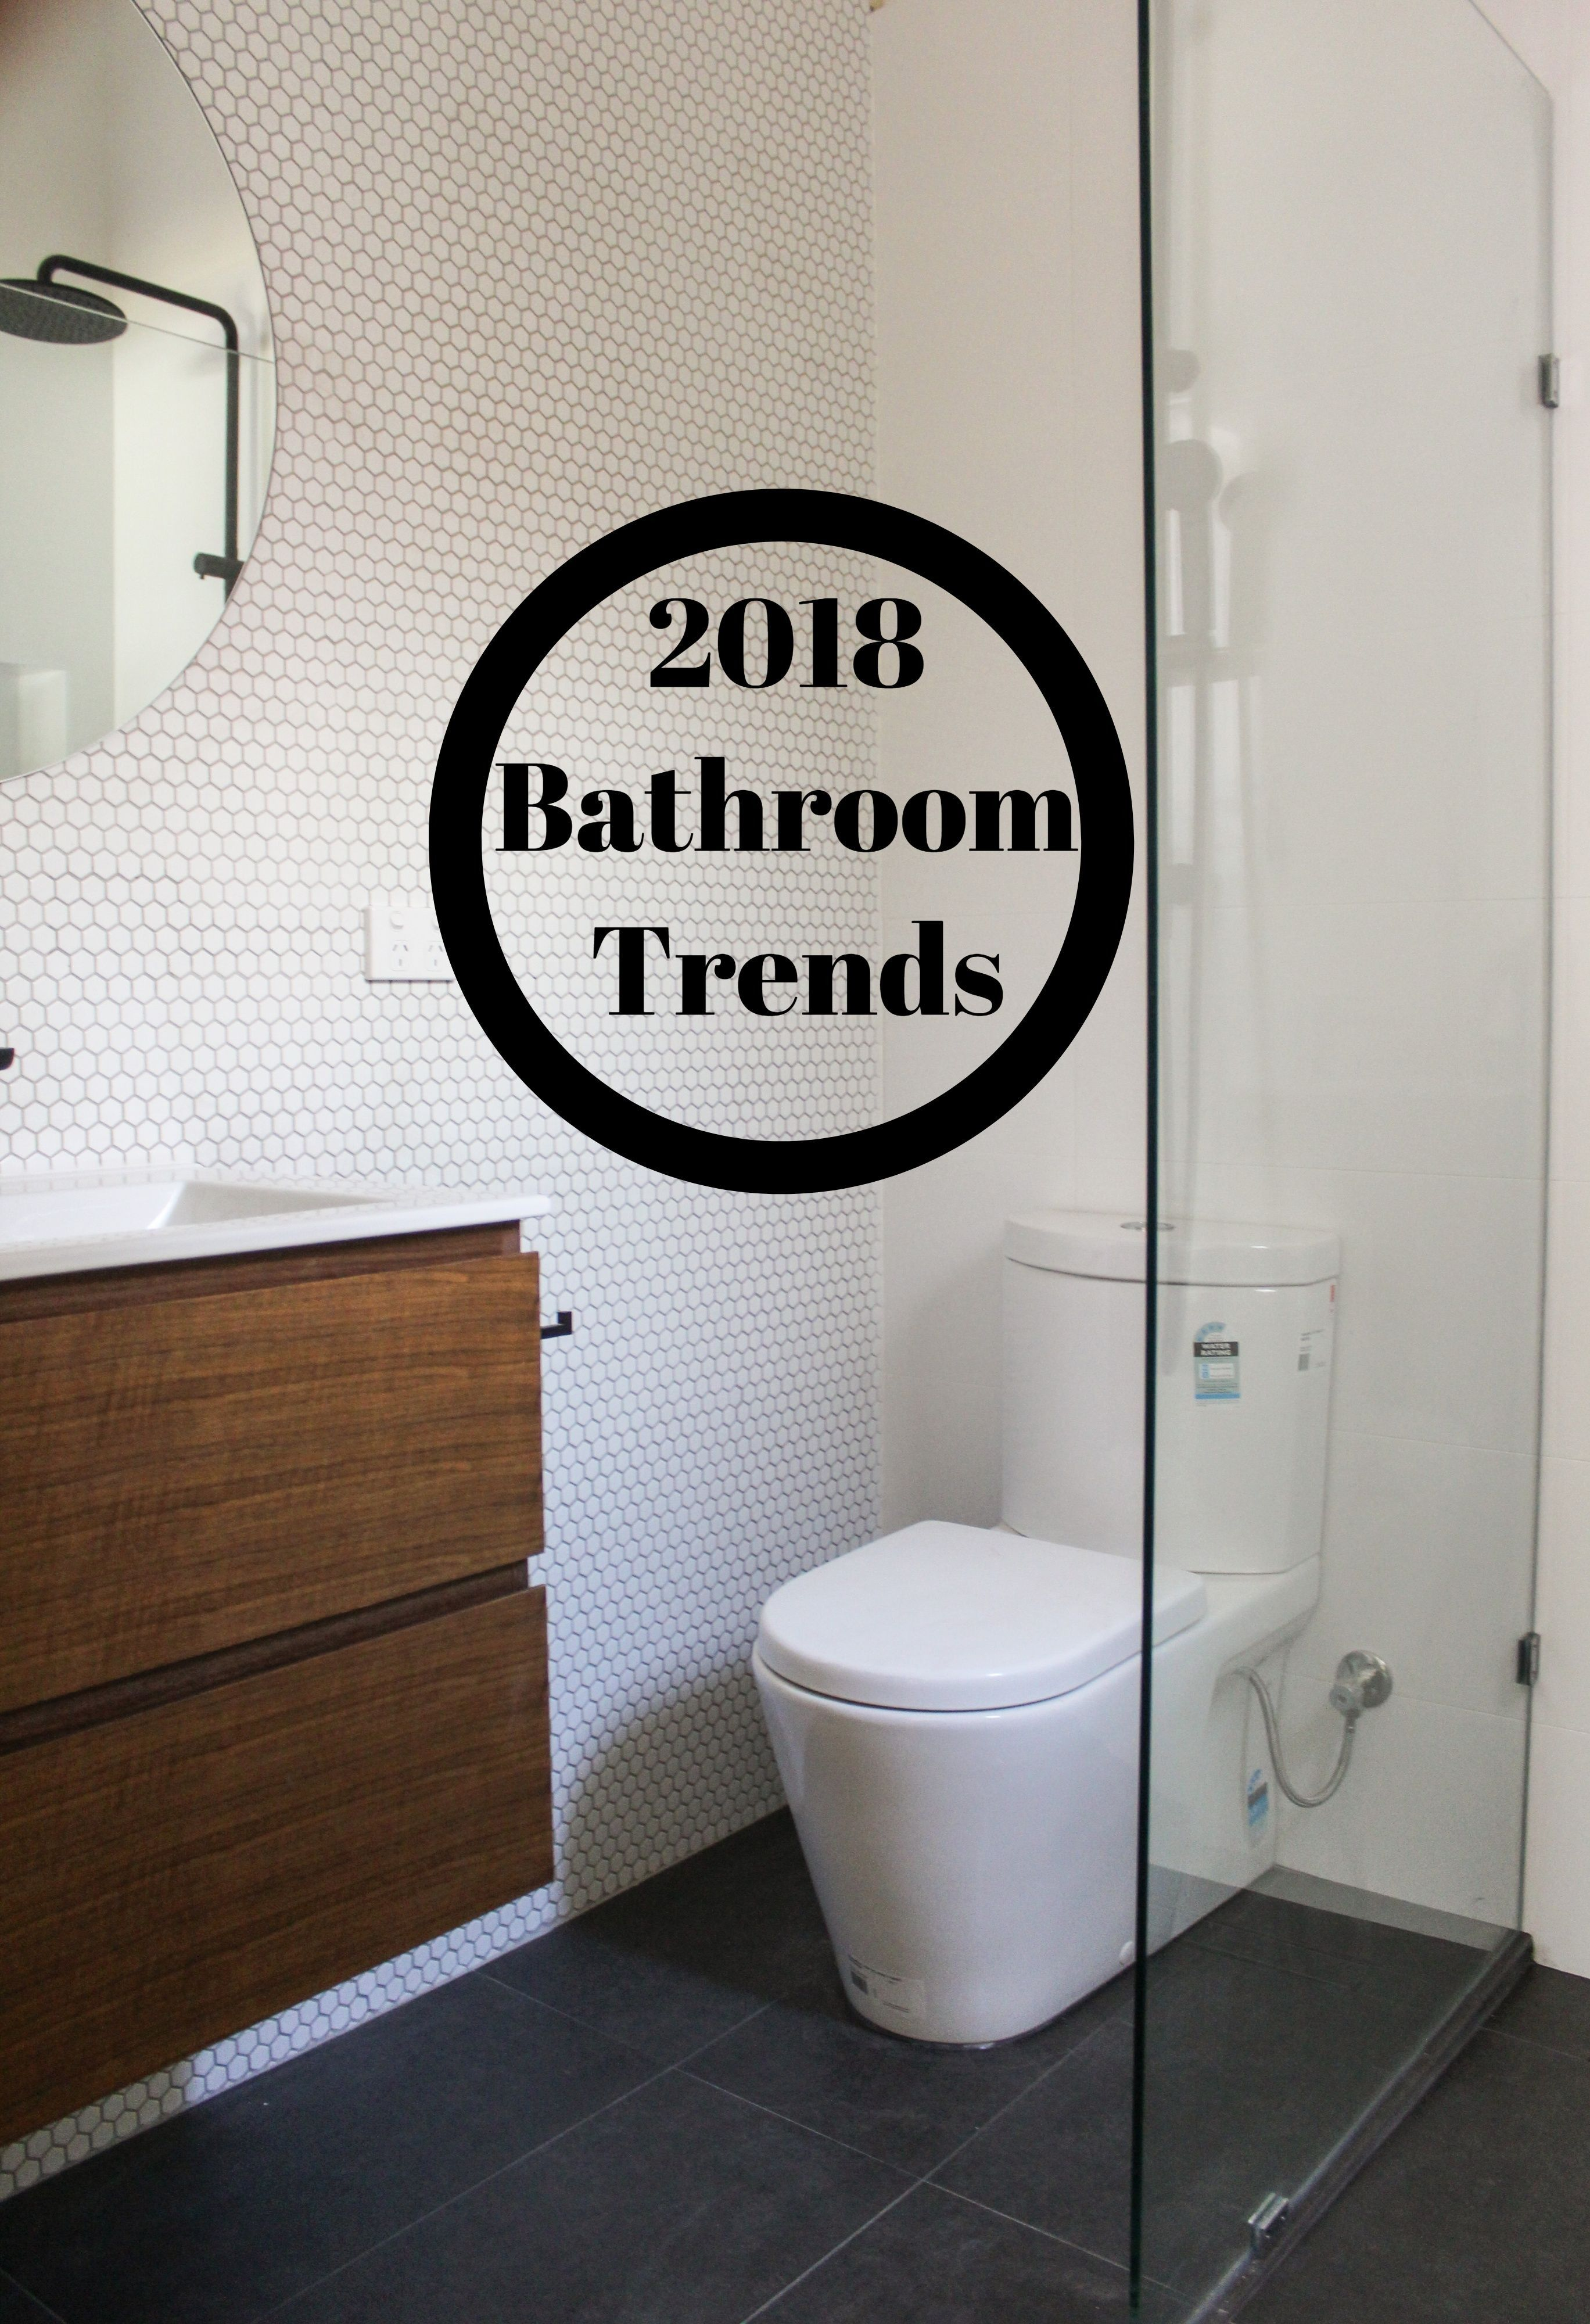 A Bathroom Renovation Is A Worthwhile Project For Your Home That Can Even Help To Add Value If S Bathroom Renovation Trends Bathroom Trends Bathroom Renovation